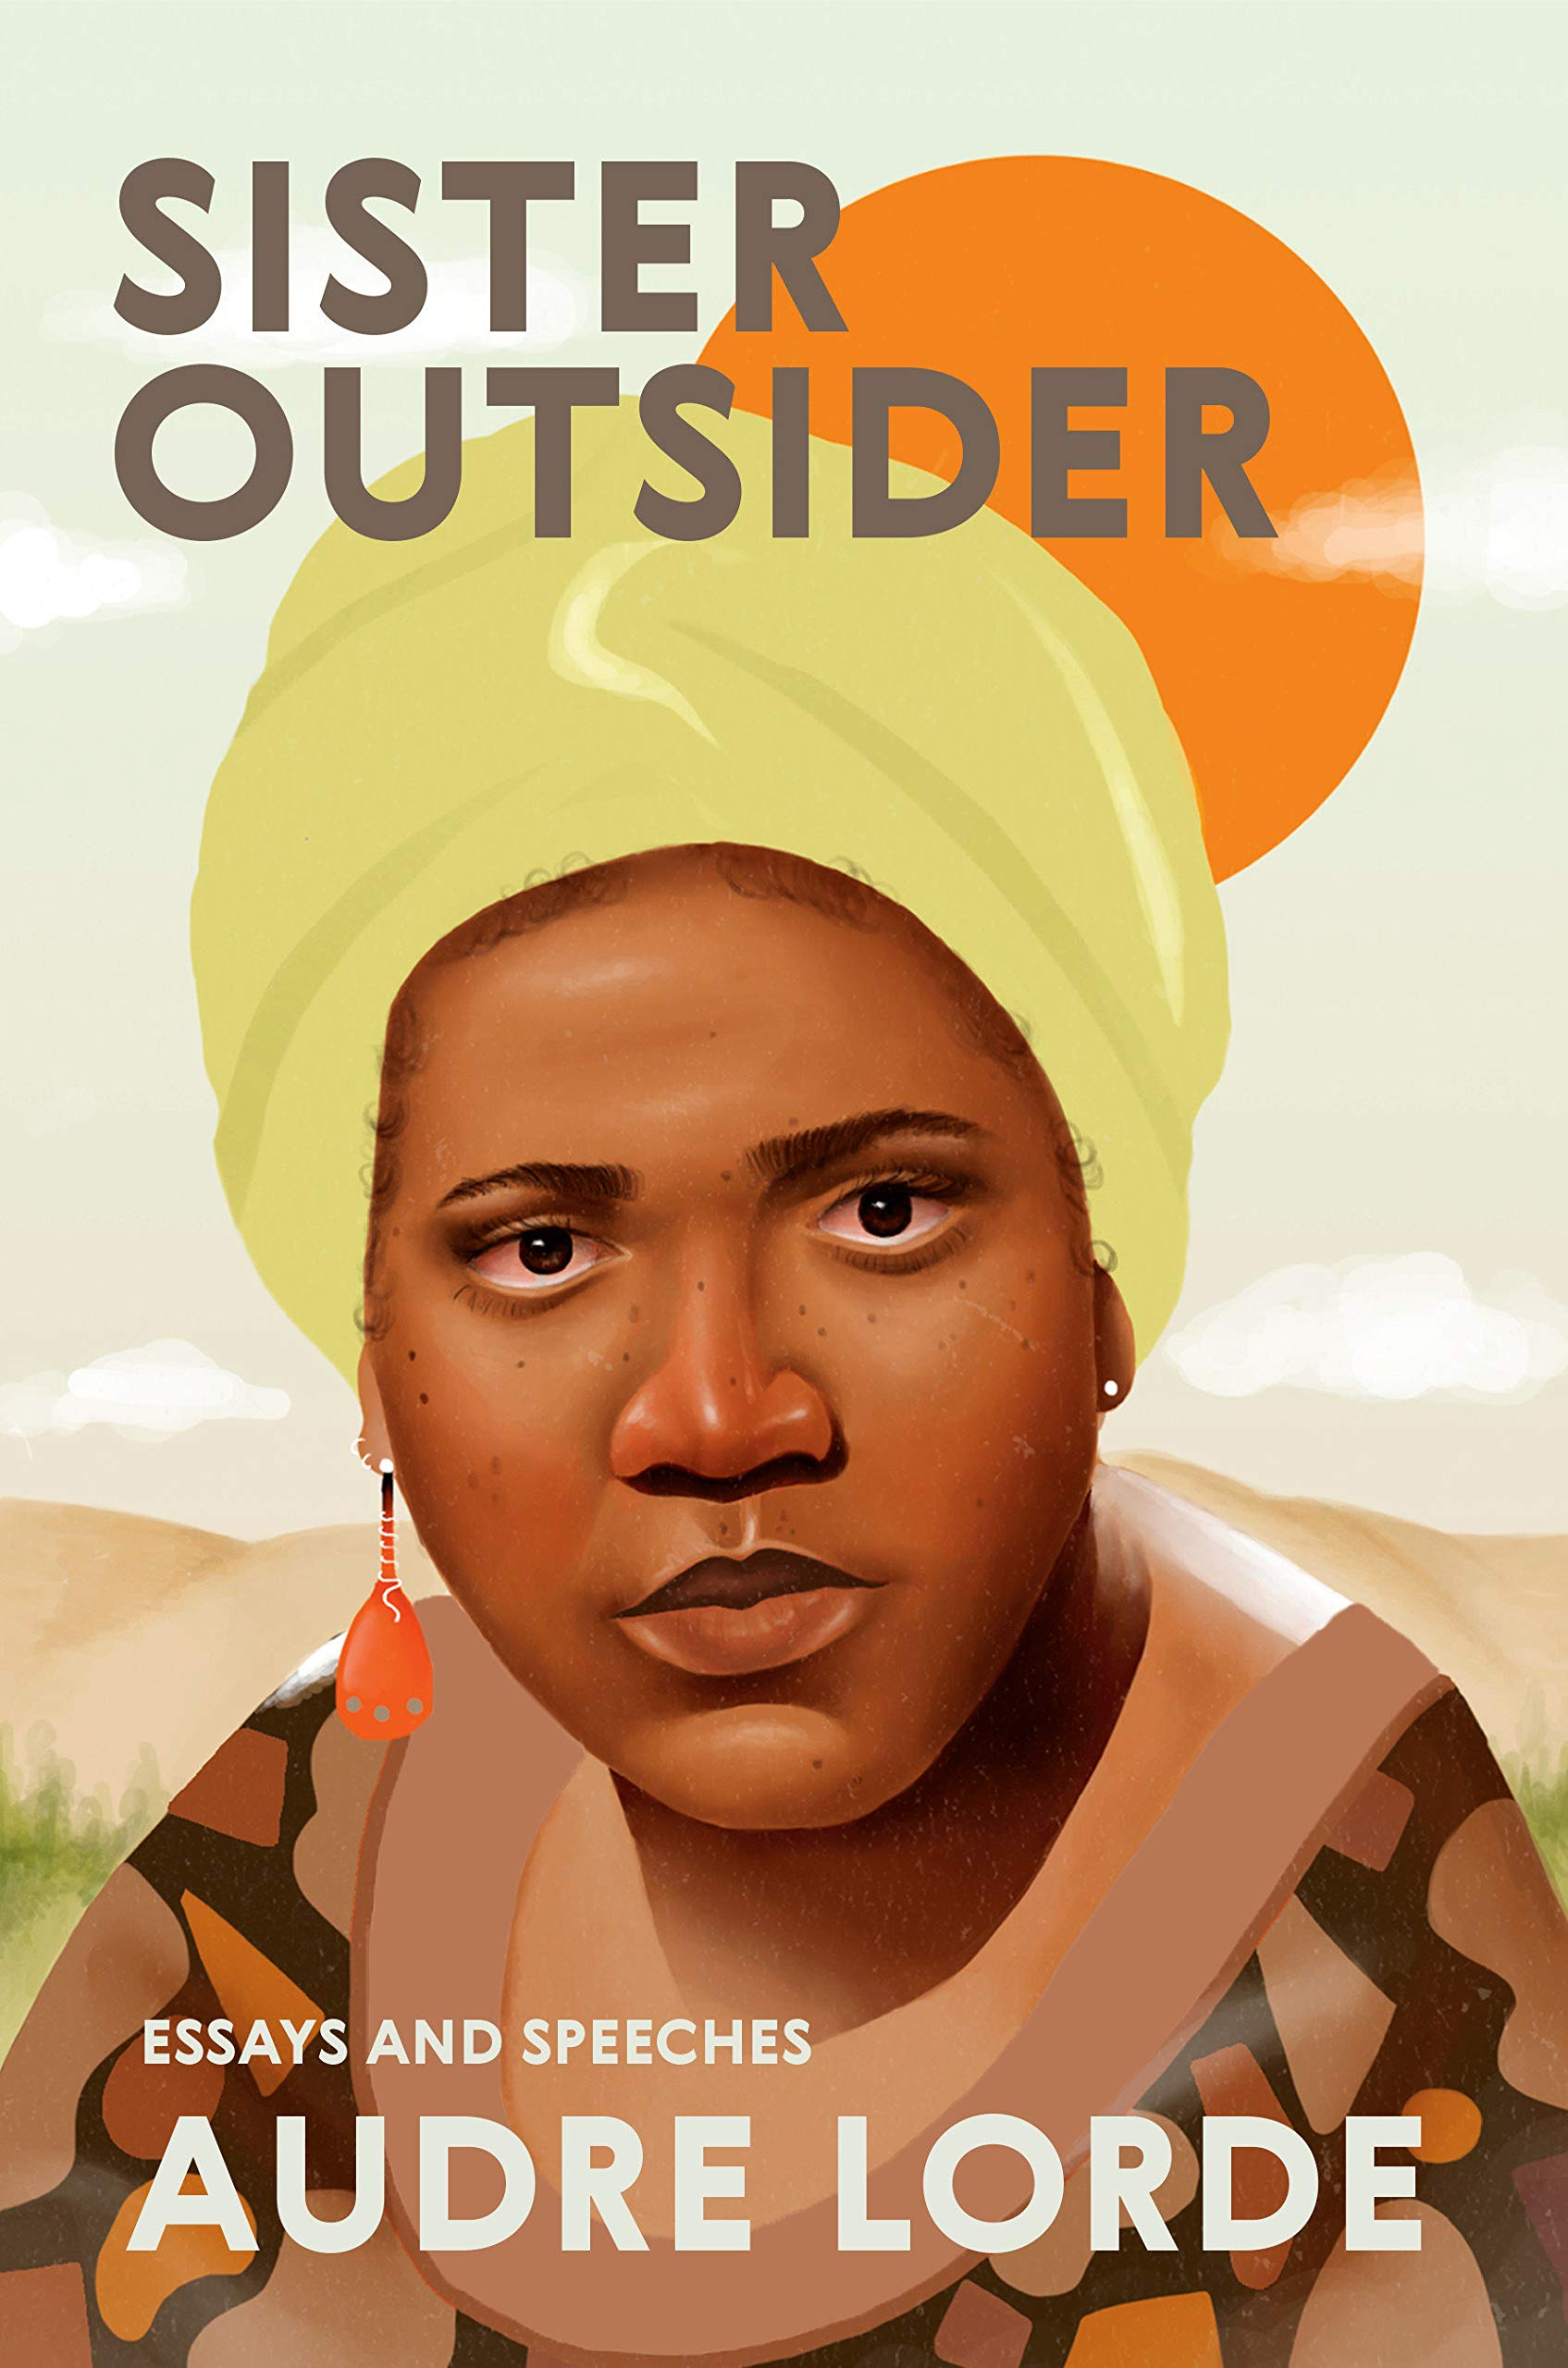 Sister Outsider: Essays and Speeches (Cover May Vary): Lorde, Audre,  Clarke, Cheryl: 9781580911863: Books - Amazon.ca